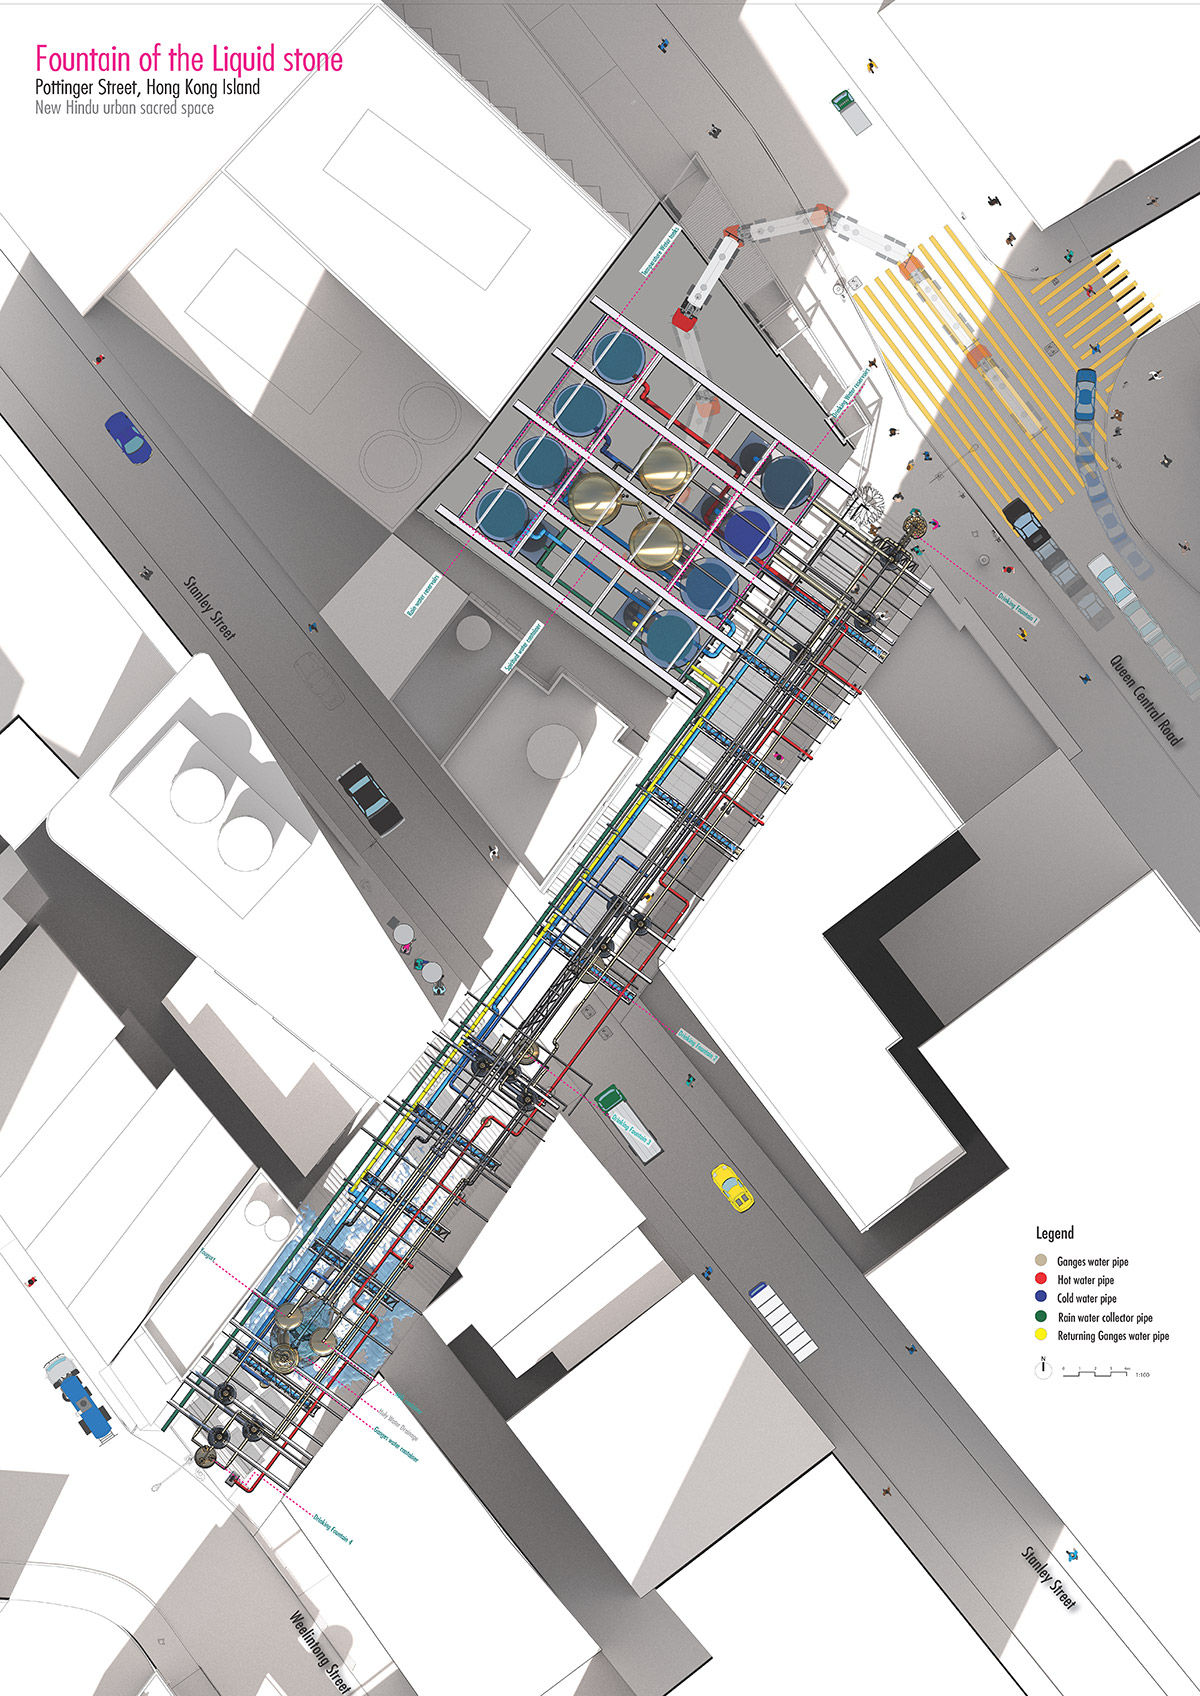 verasustudio_Fountain of the liquid stone_New Hindu Urban scared space_Pottinger Street, Hongkong_architecture_site plan drawing_water dilivery